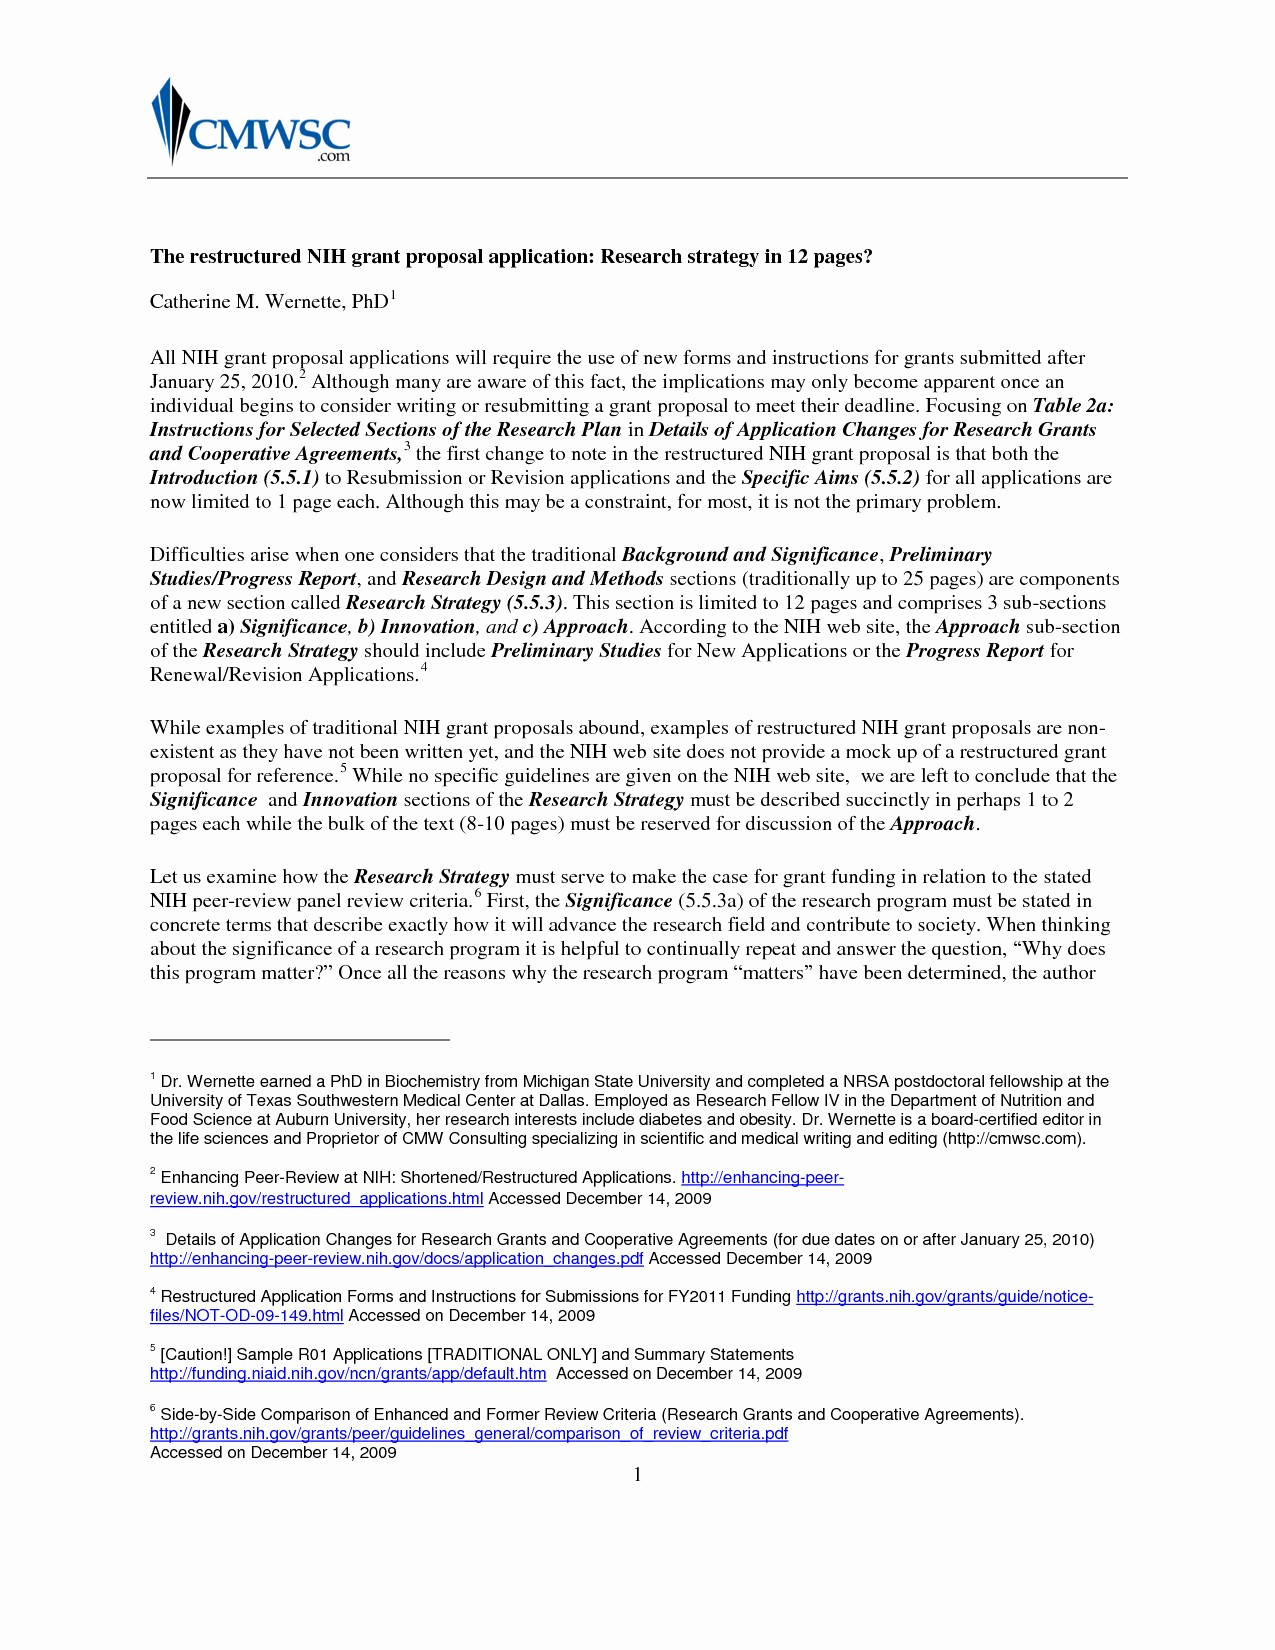 Mission Trip Letter Template - Personal Mitment Statement Examples Cover Letter